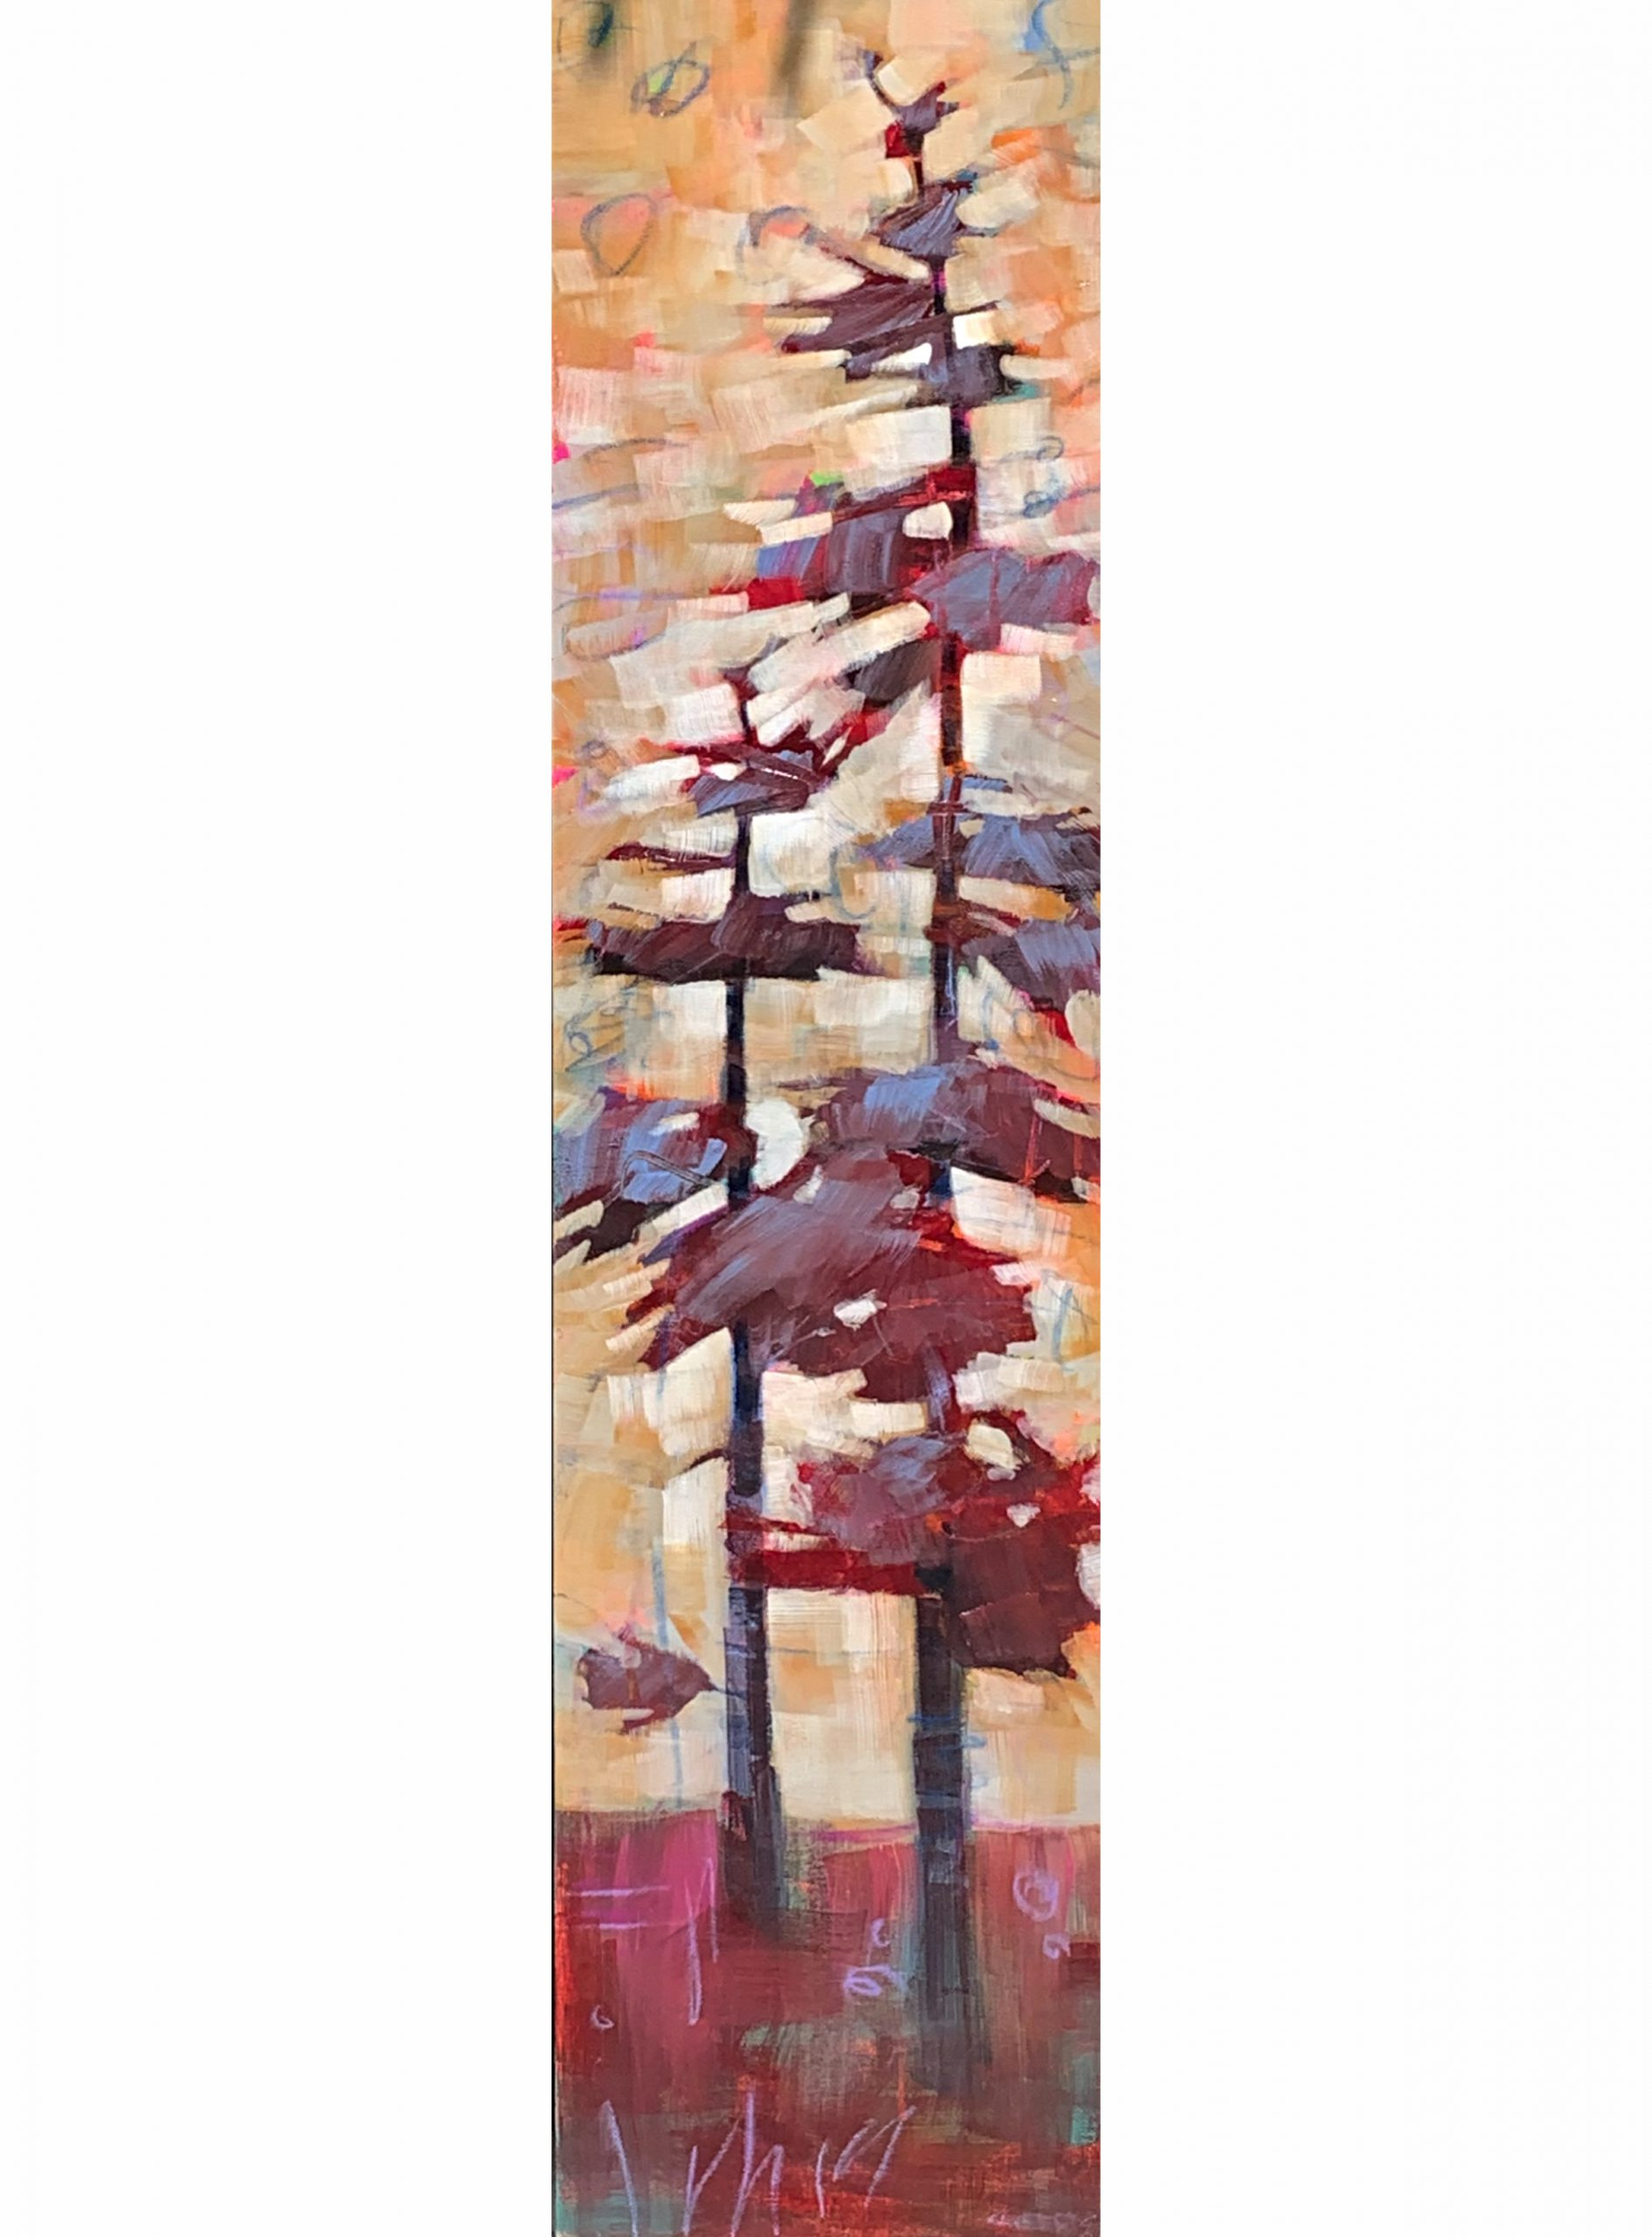 Coming Change, mixed media tree painting by Connie Geerts | Effusion Art Gallery + Cast Glass Studio, Invermere BC